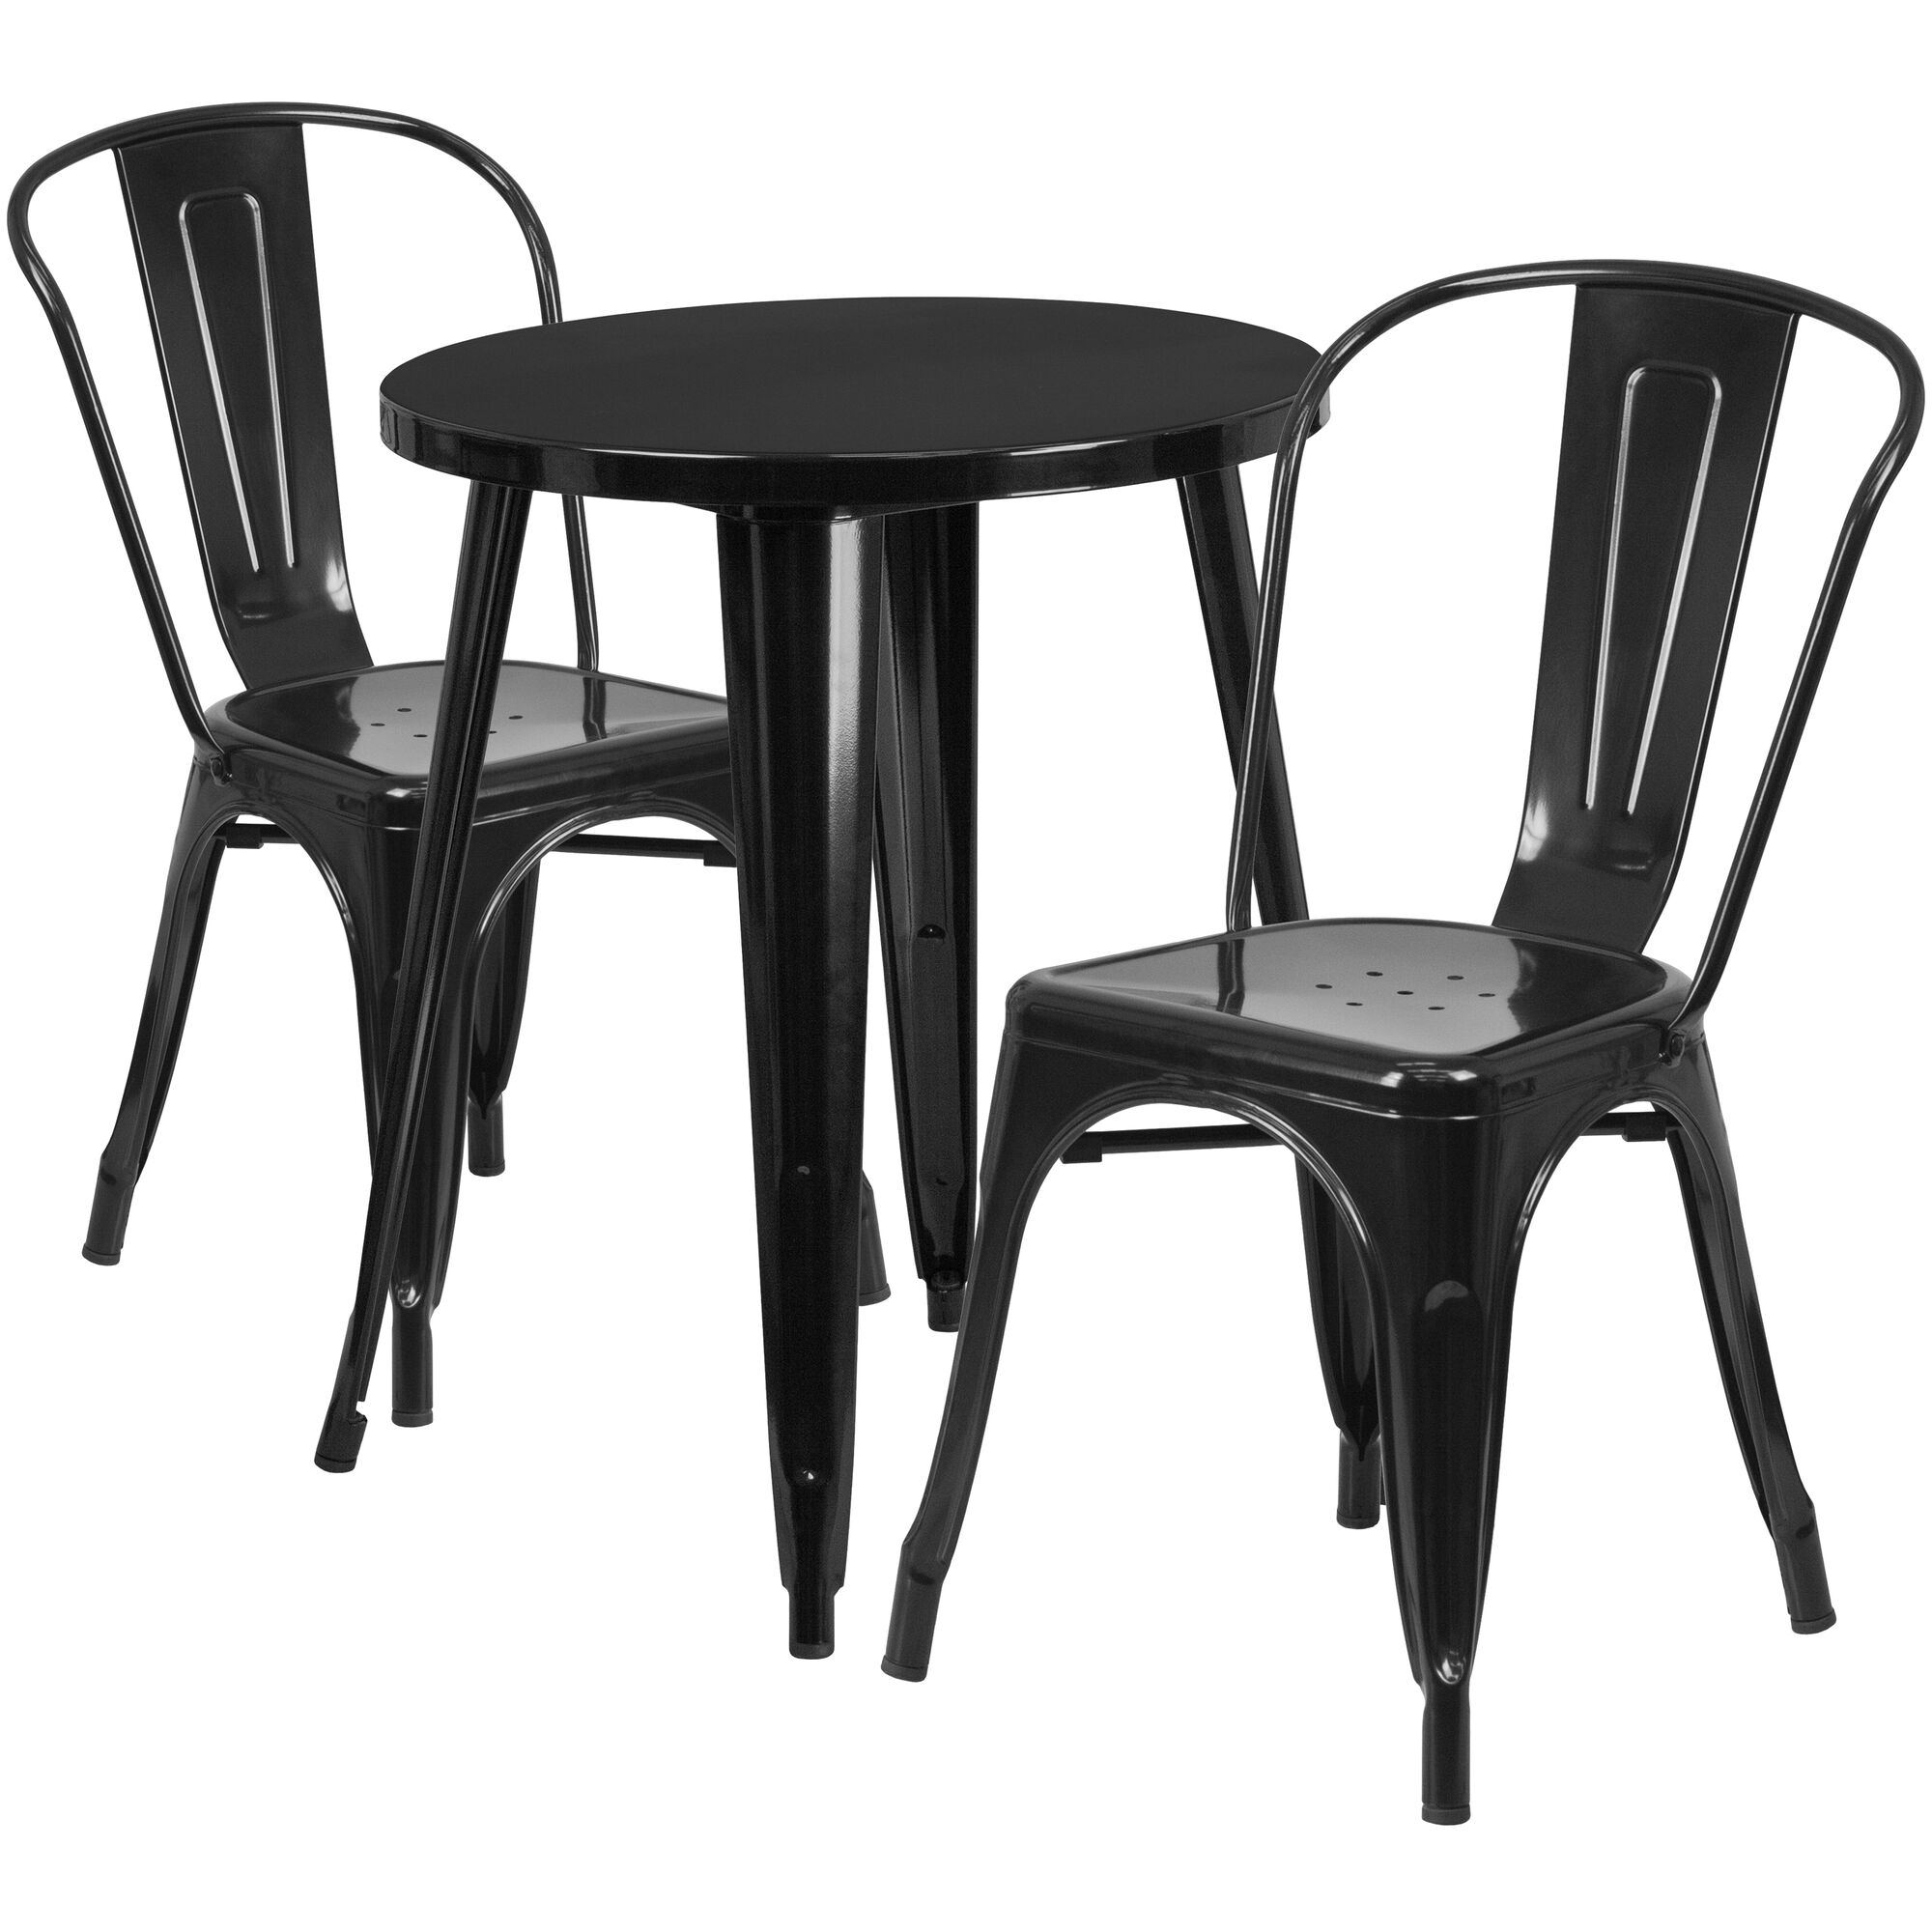 Commercial Grade 24 Round Black Metal Indoor Outdoor Table Set With 2 Cafe Chairs